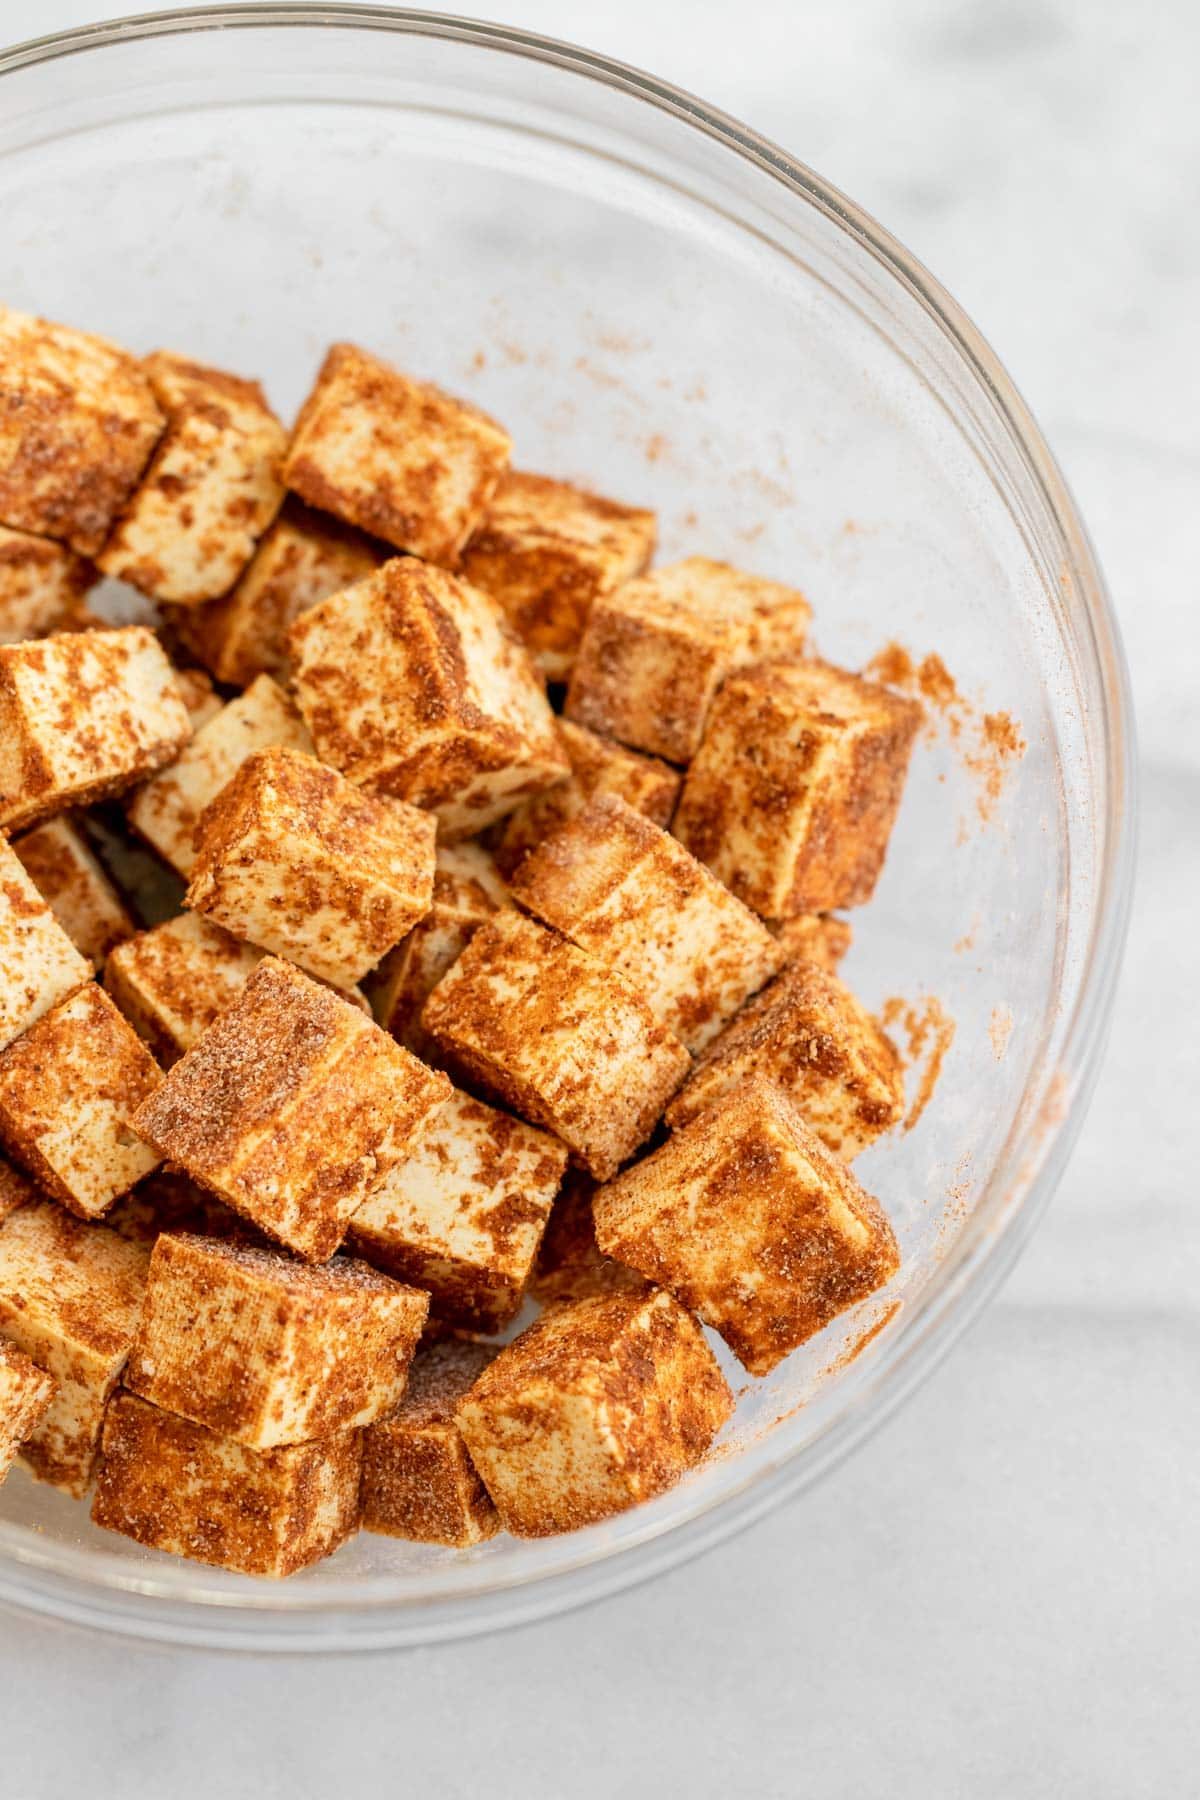 Tofu with seasonings in a glass bowl.